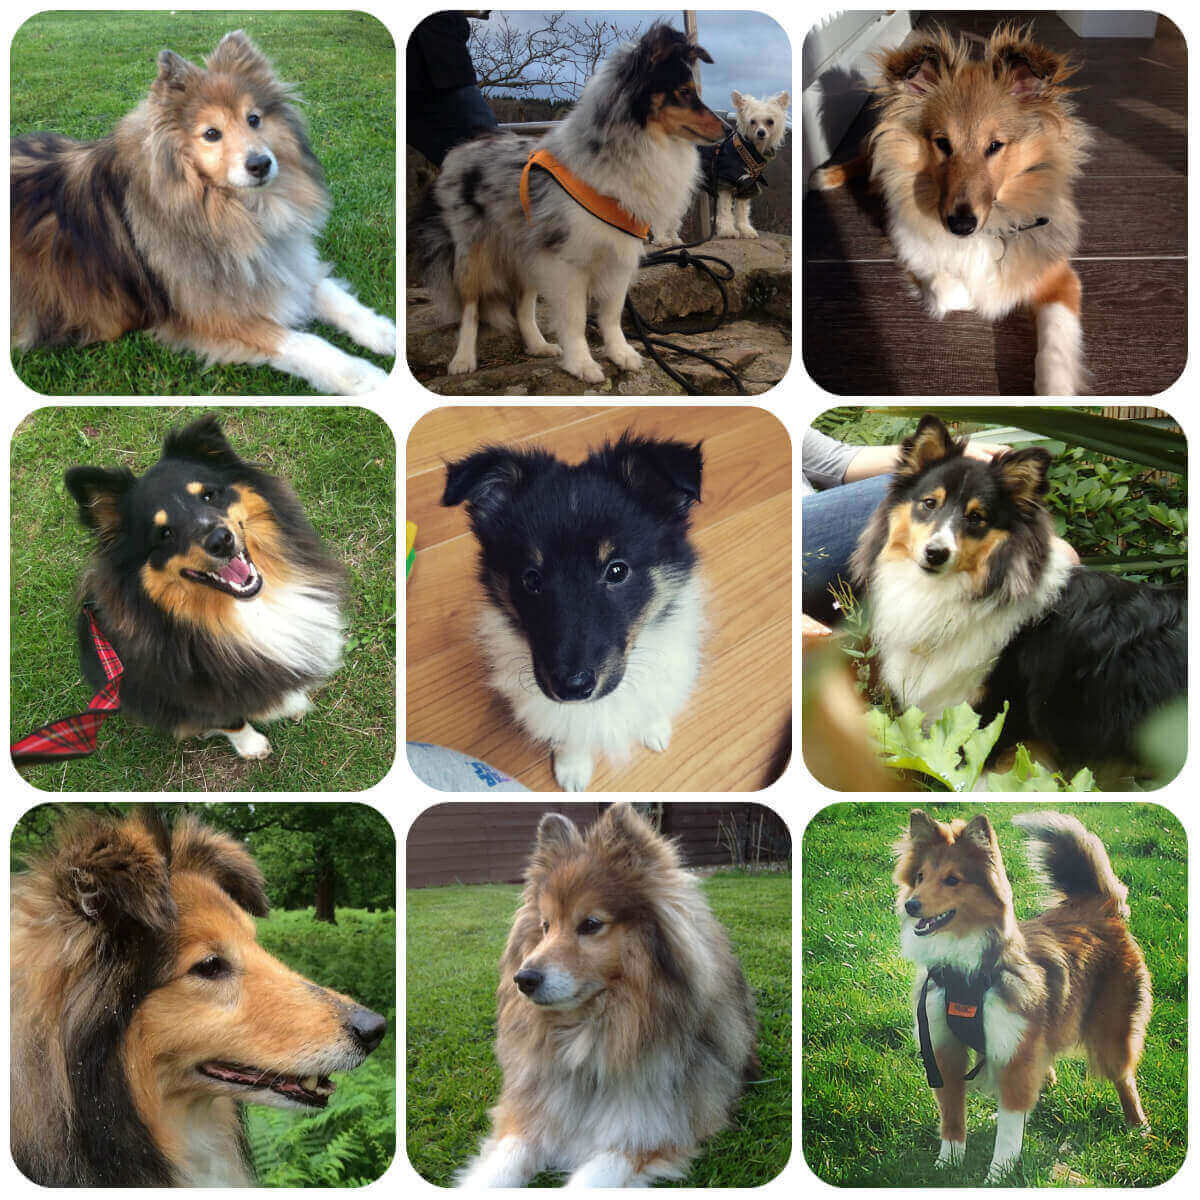 A collage of Shetland Sheepdog dogs and puppies, part of BorrowMyDoggy's guide to dog breeds.